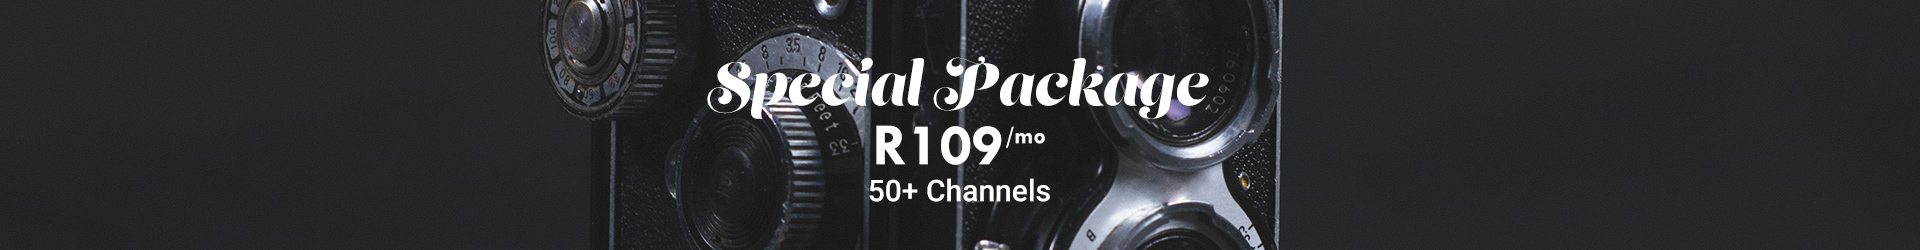 StarSat Special Package